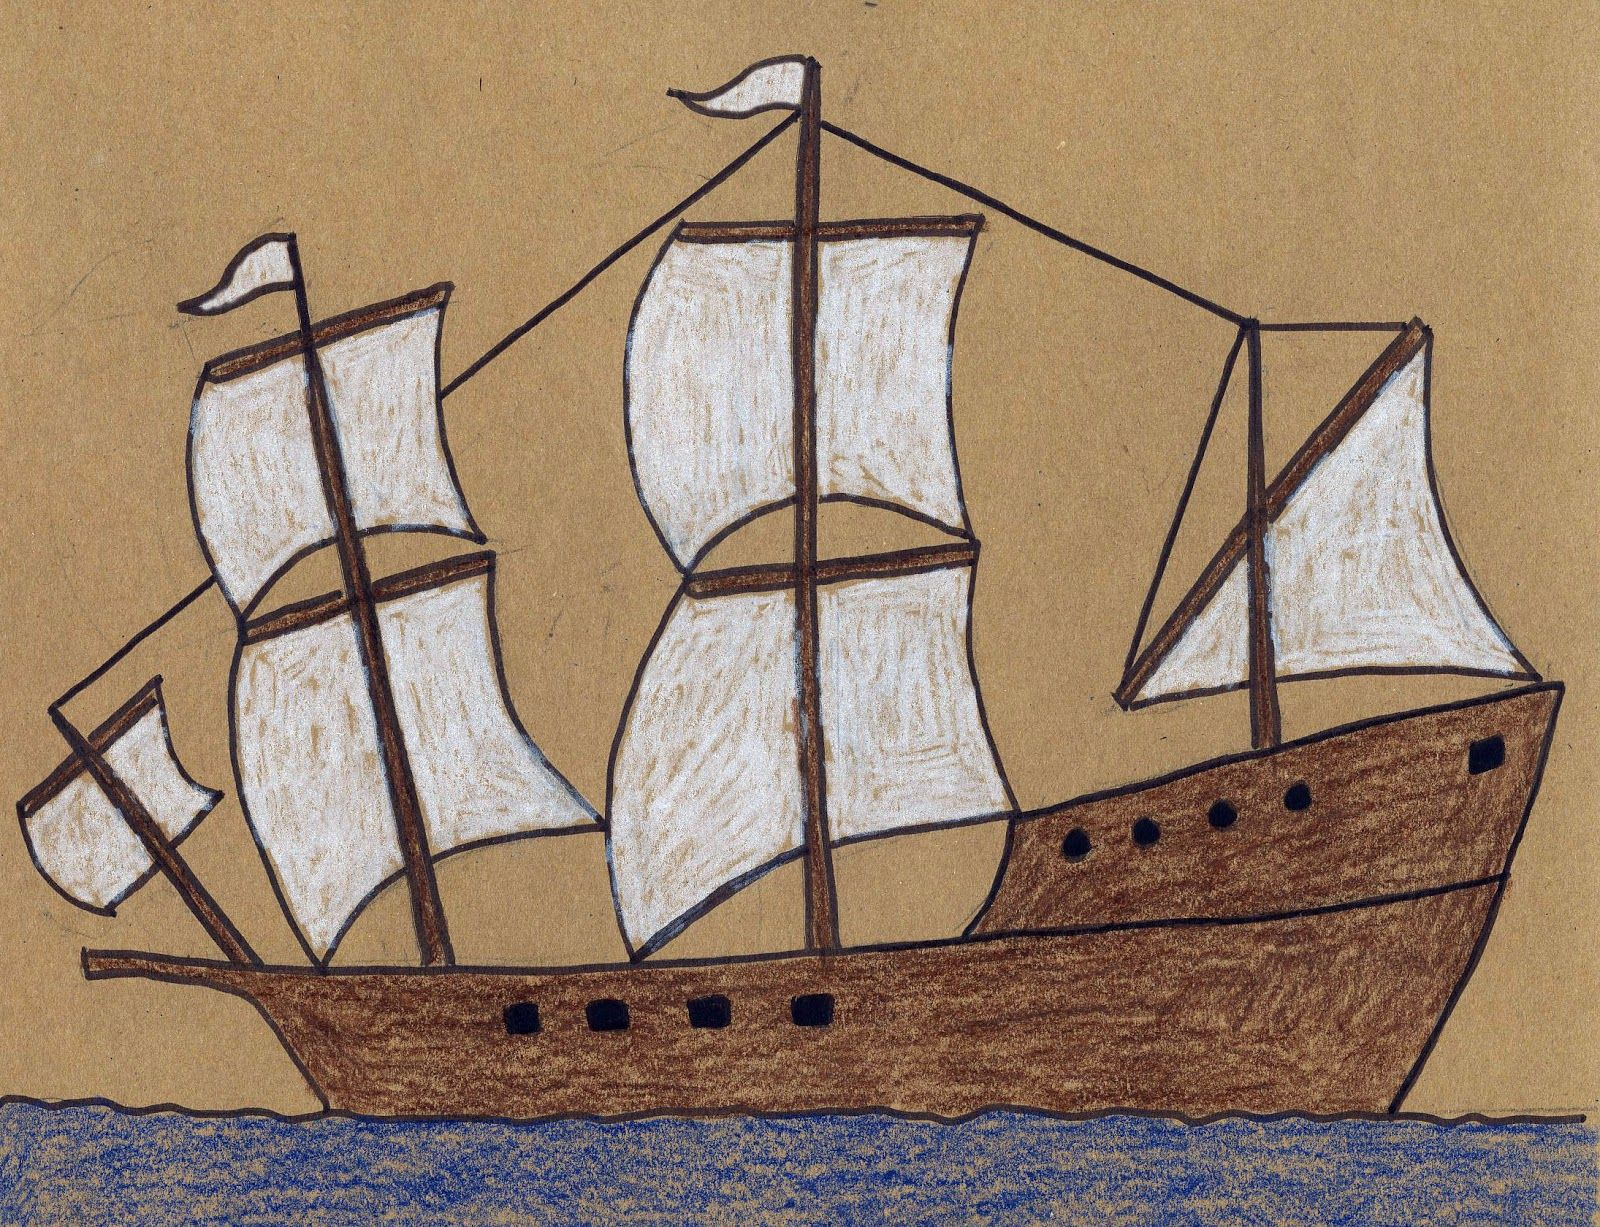 How To Draw The Mayflower In 12 Easy Steps You Can Do This! Art